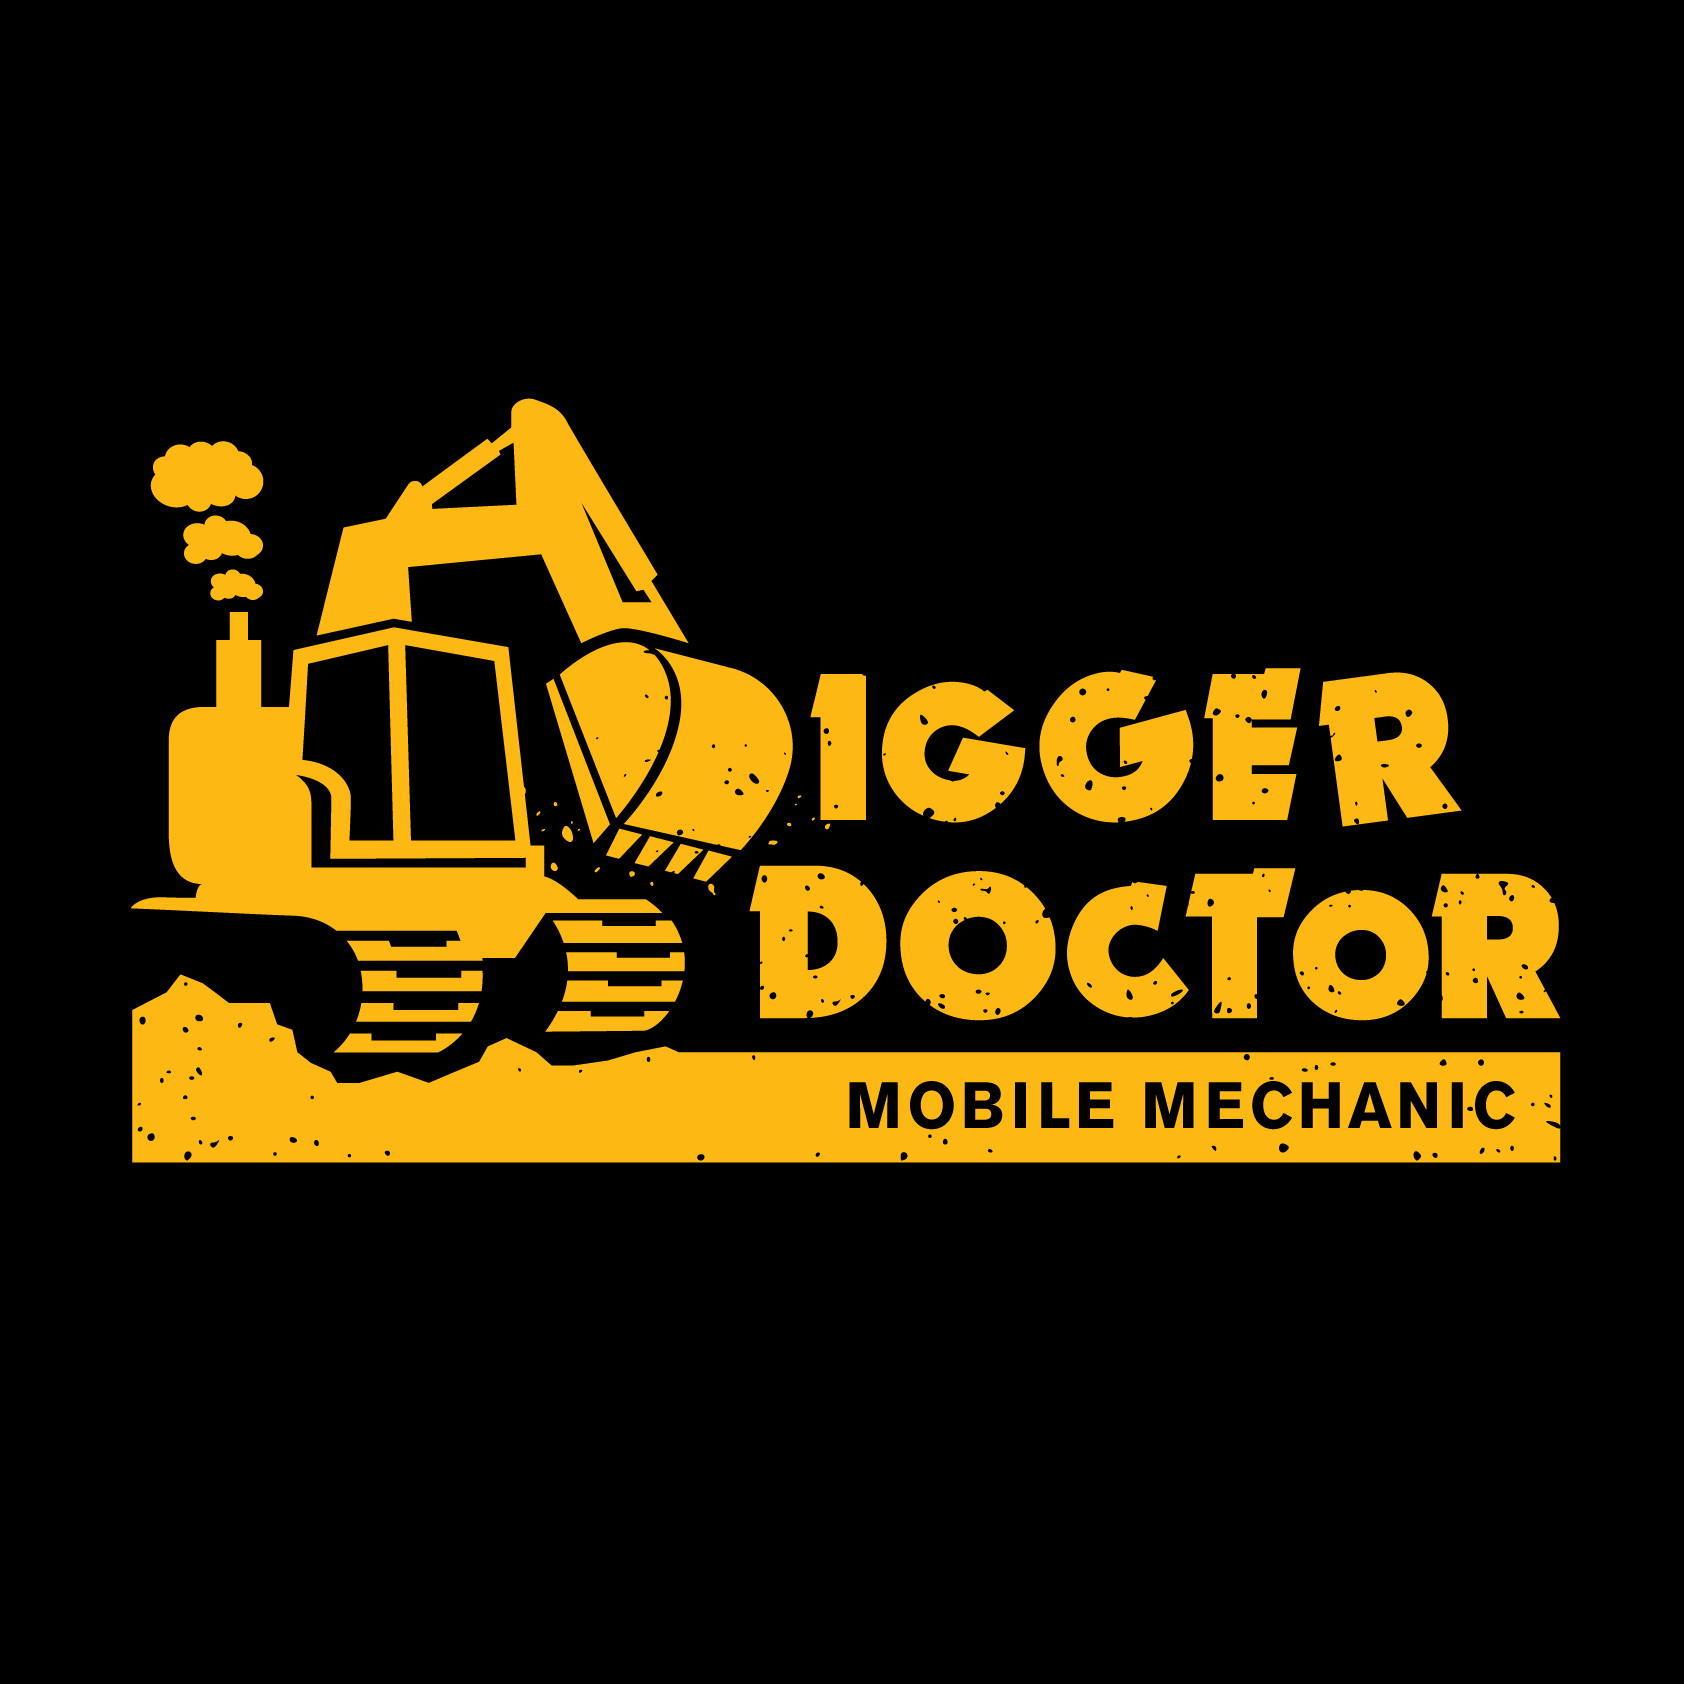 Digger Doctor